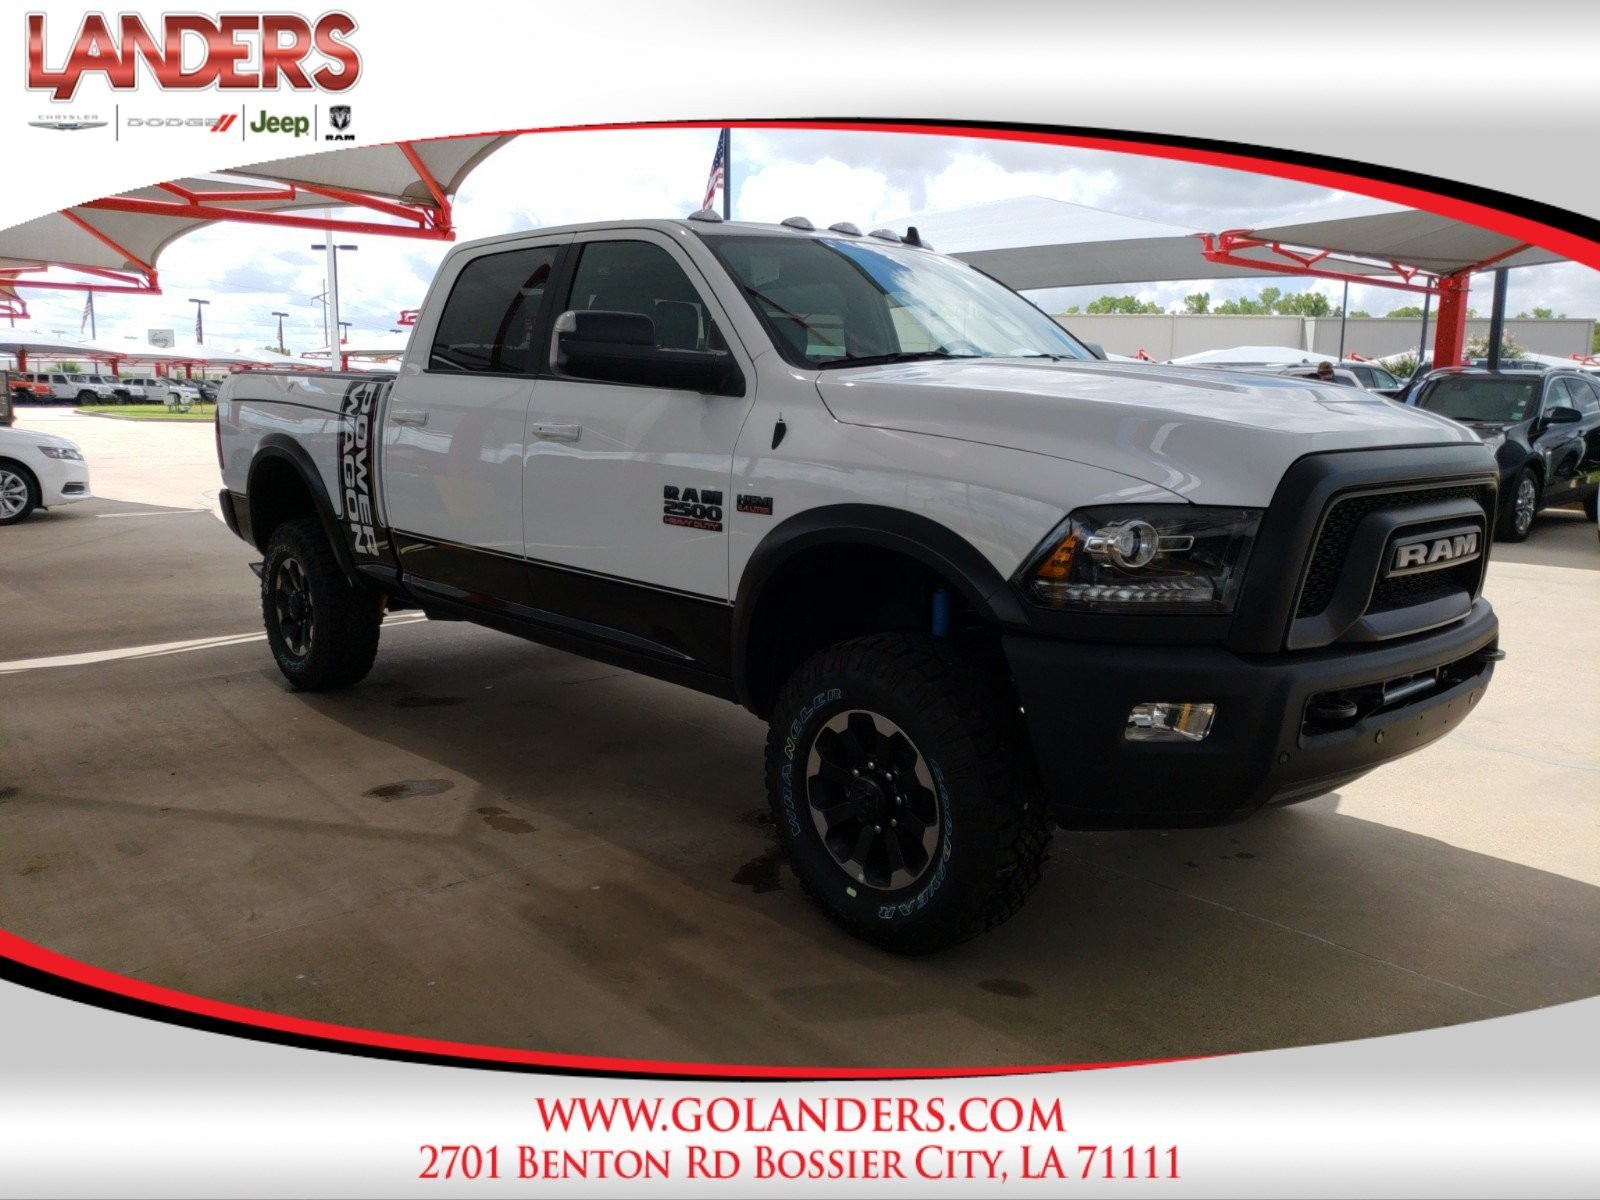 Pickup Truck Inspection Diagram New 2018 Ram 2500 Power Wagon Crew Cab In Bossier City Jg Of Pickup Truck Inspection Diagram